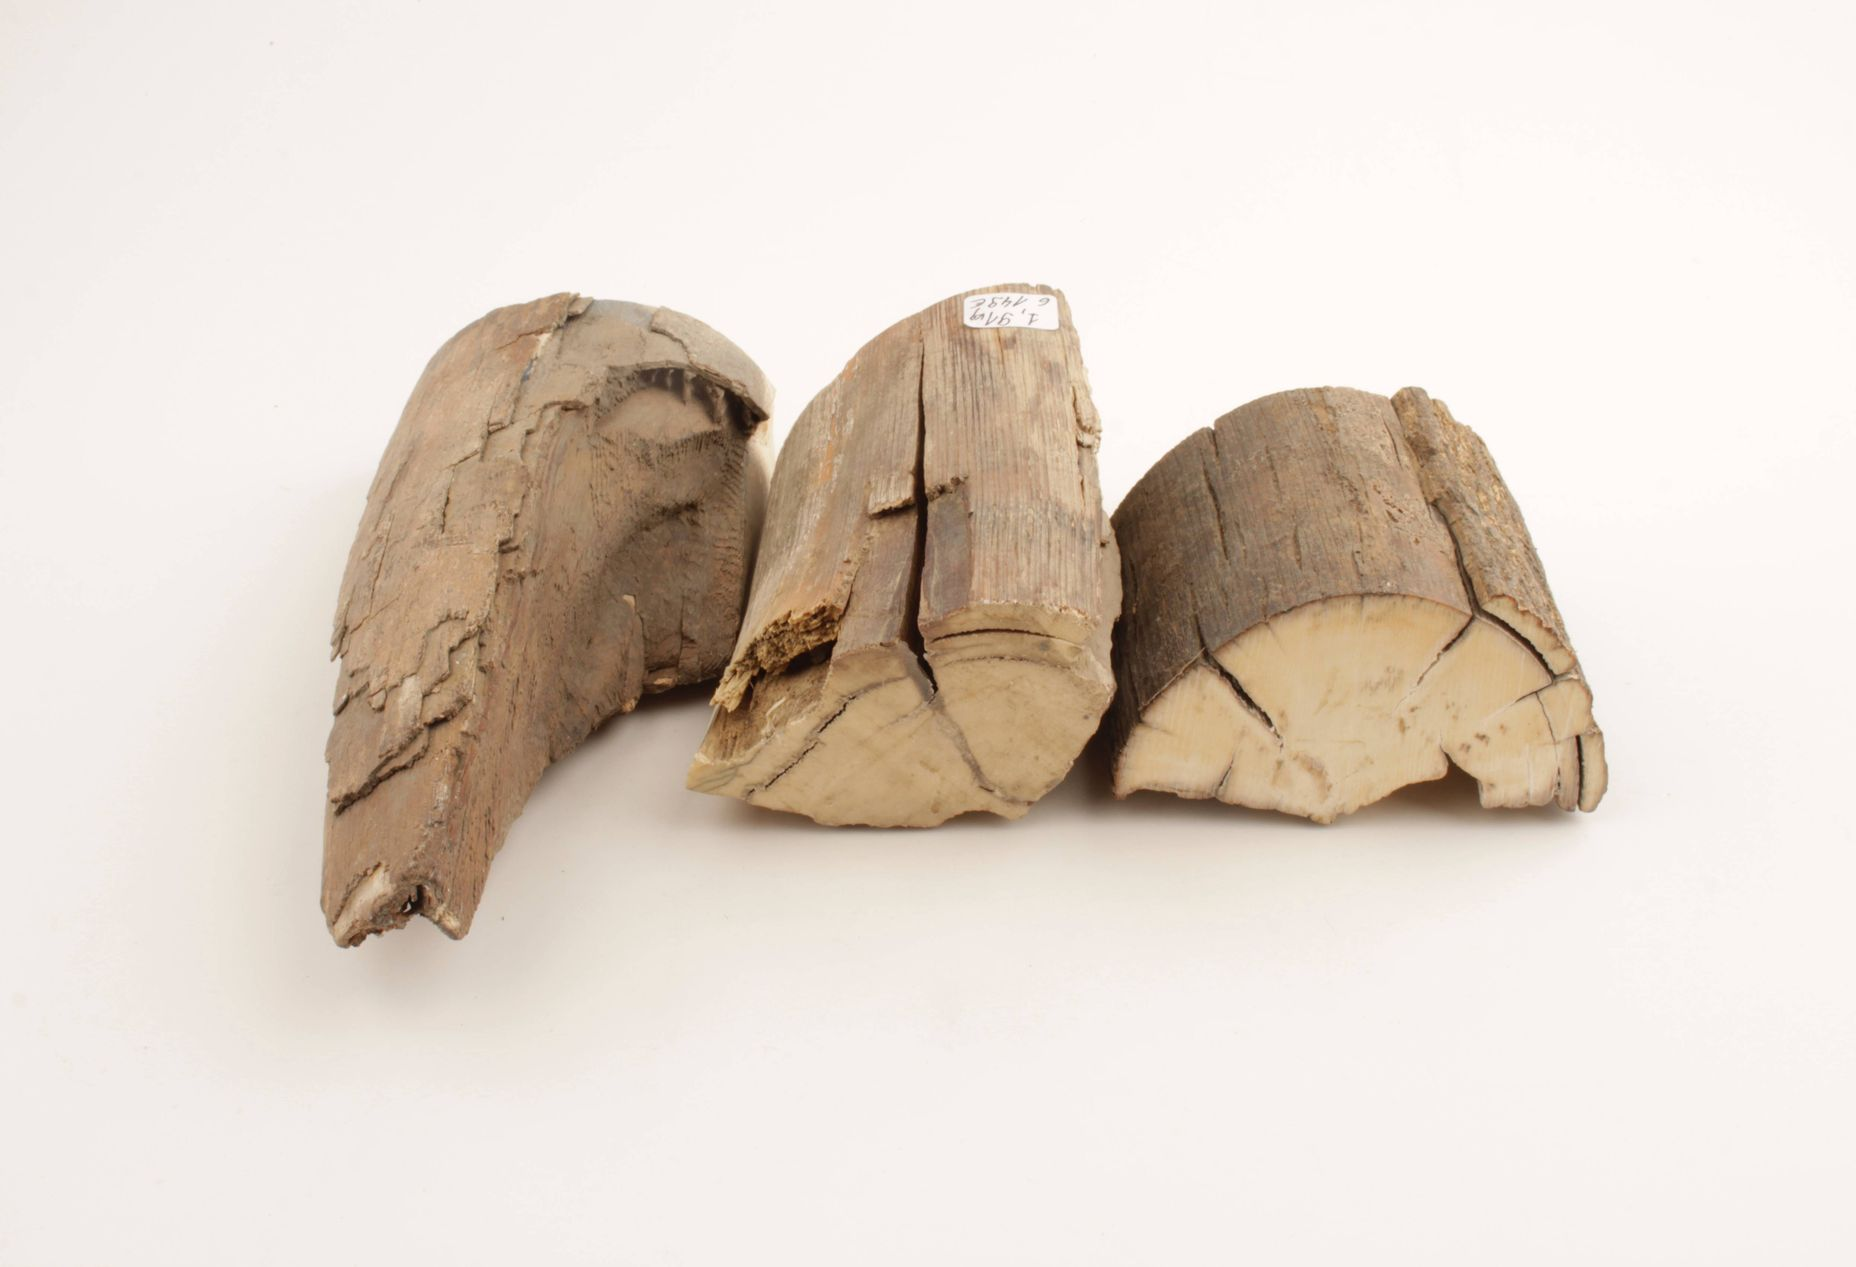 Raw woolly mammoth ivory pieces